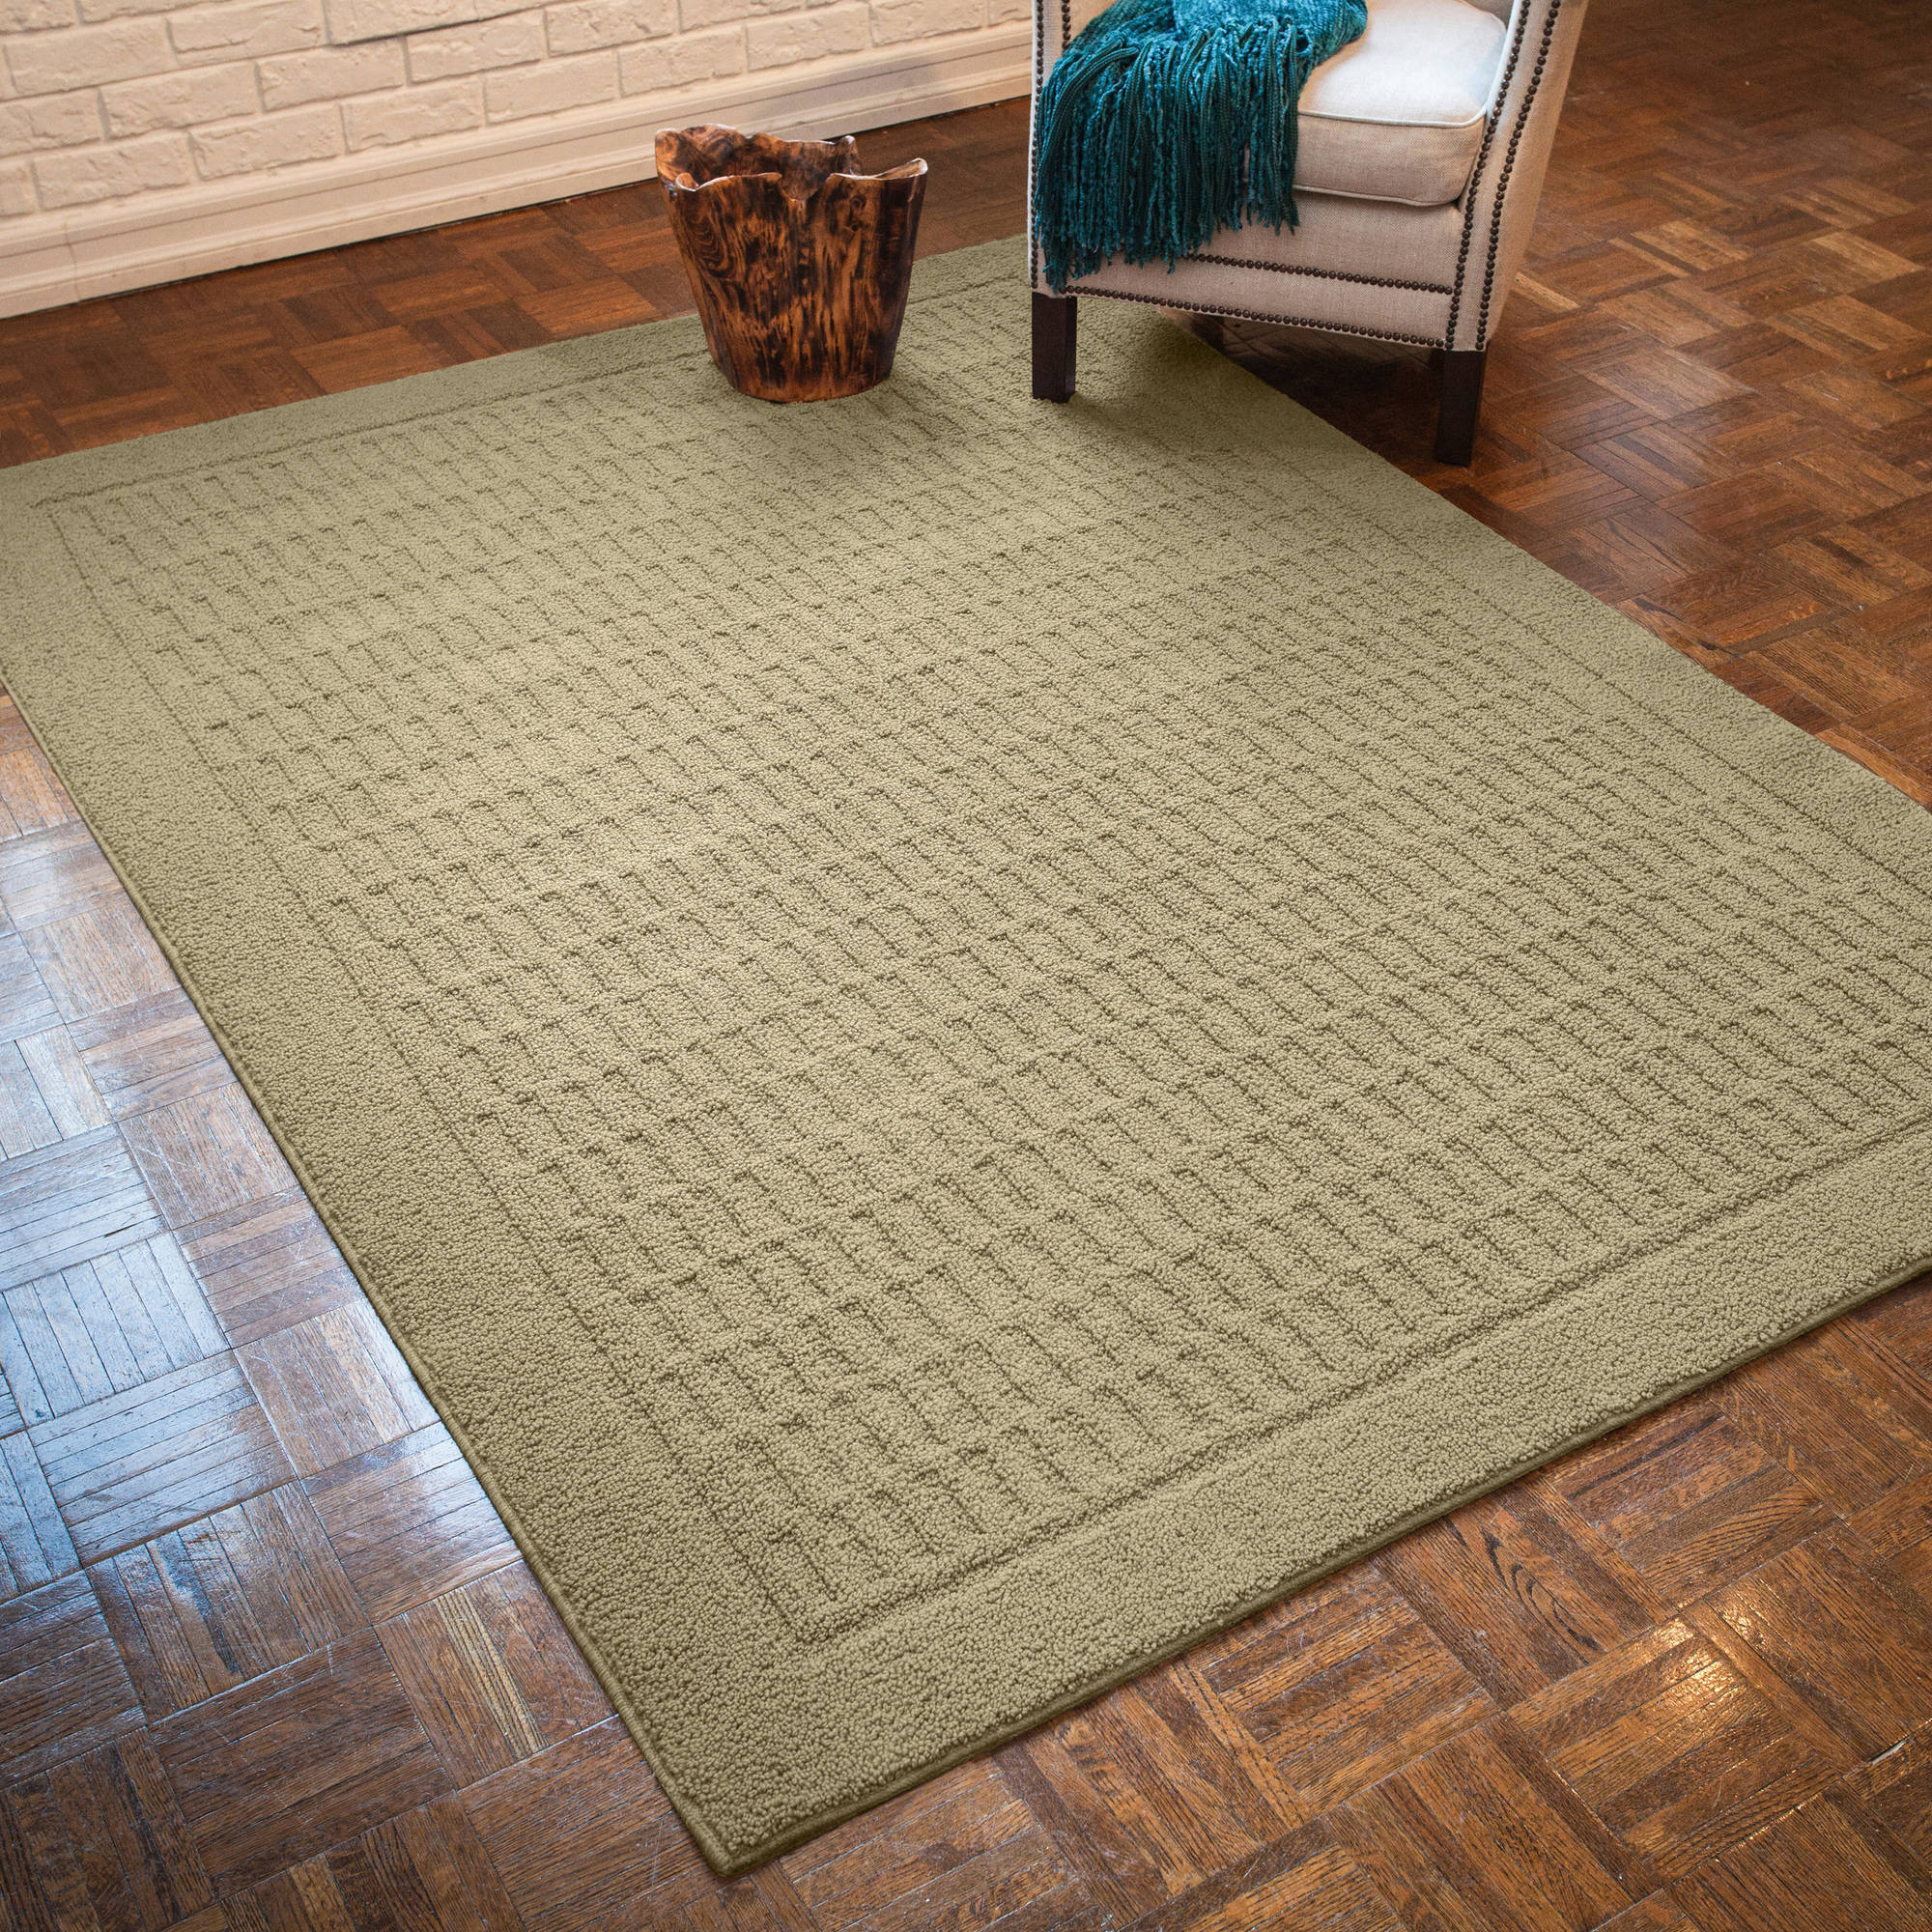 mainstays dylan nylon area rugs or runner collection image 1 of 4